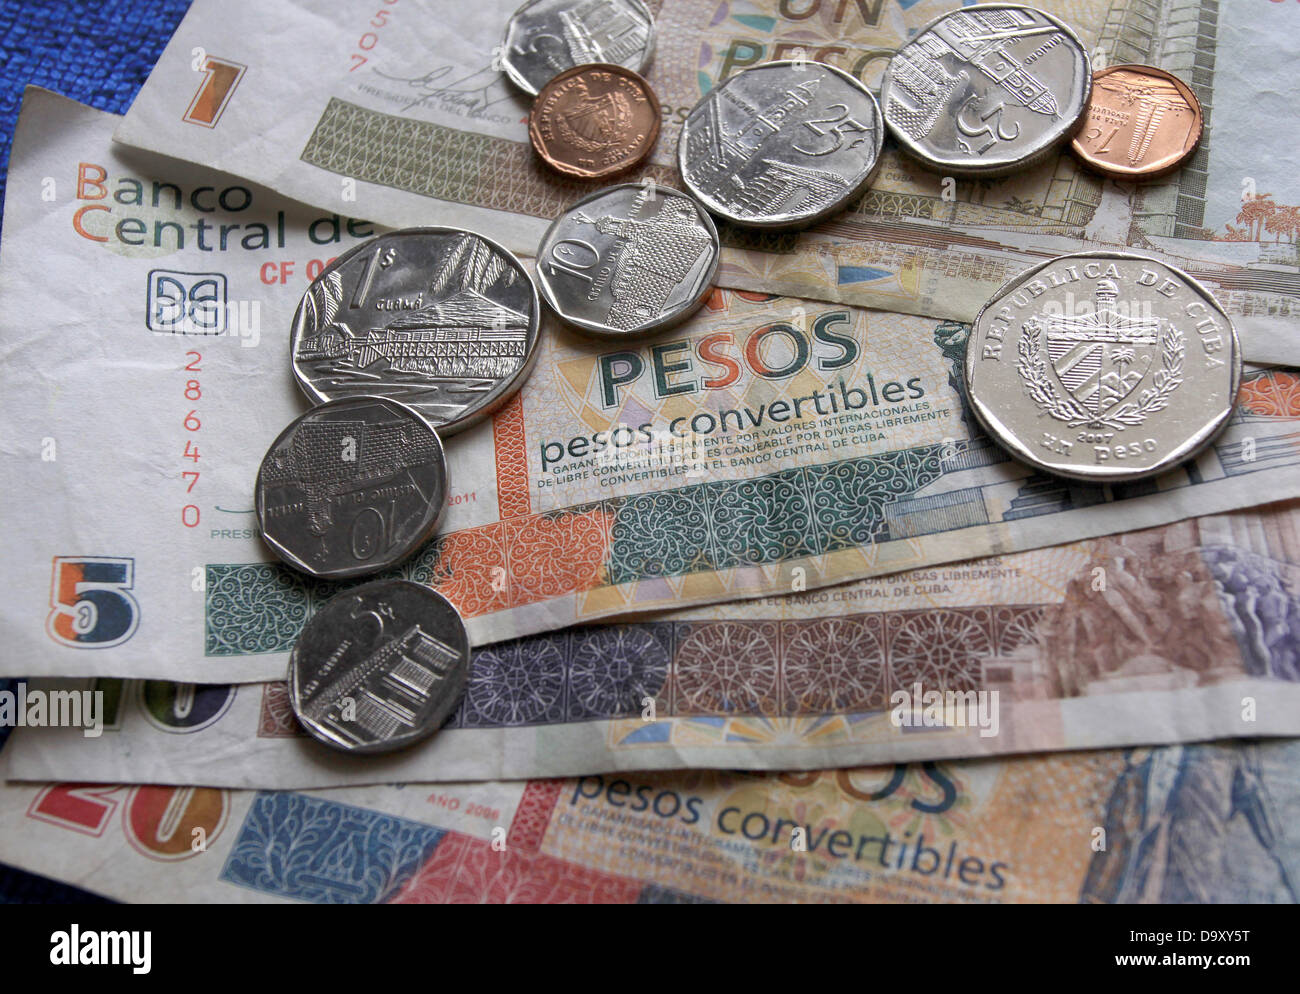 Different banknotes and coins of Cuban tourists currency Pesos Convertibles (CUC) whose value is linked to the US - Stock Image